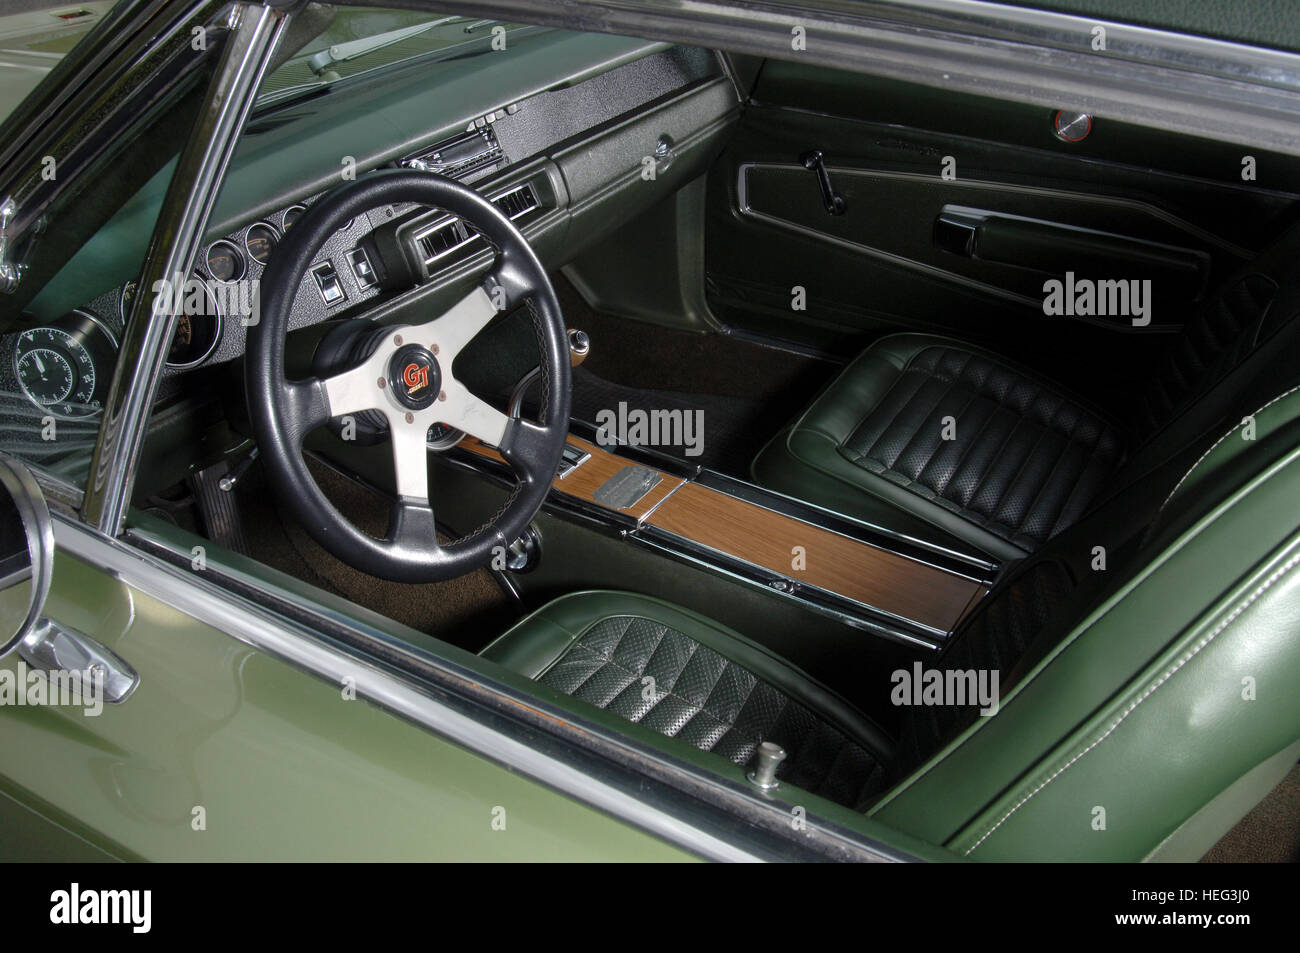 1970 dodge charger 500 classic american muscle car interior bucket stock photo royalty free. Black Bedroom Furniture Sets. Home Design Ideas